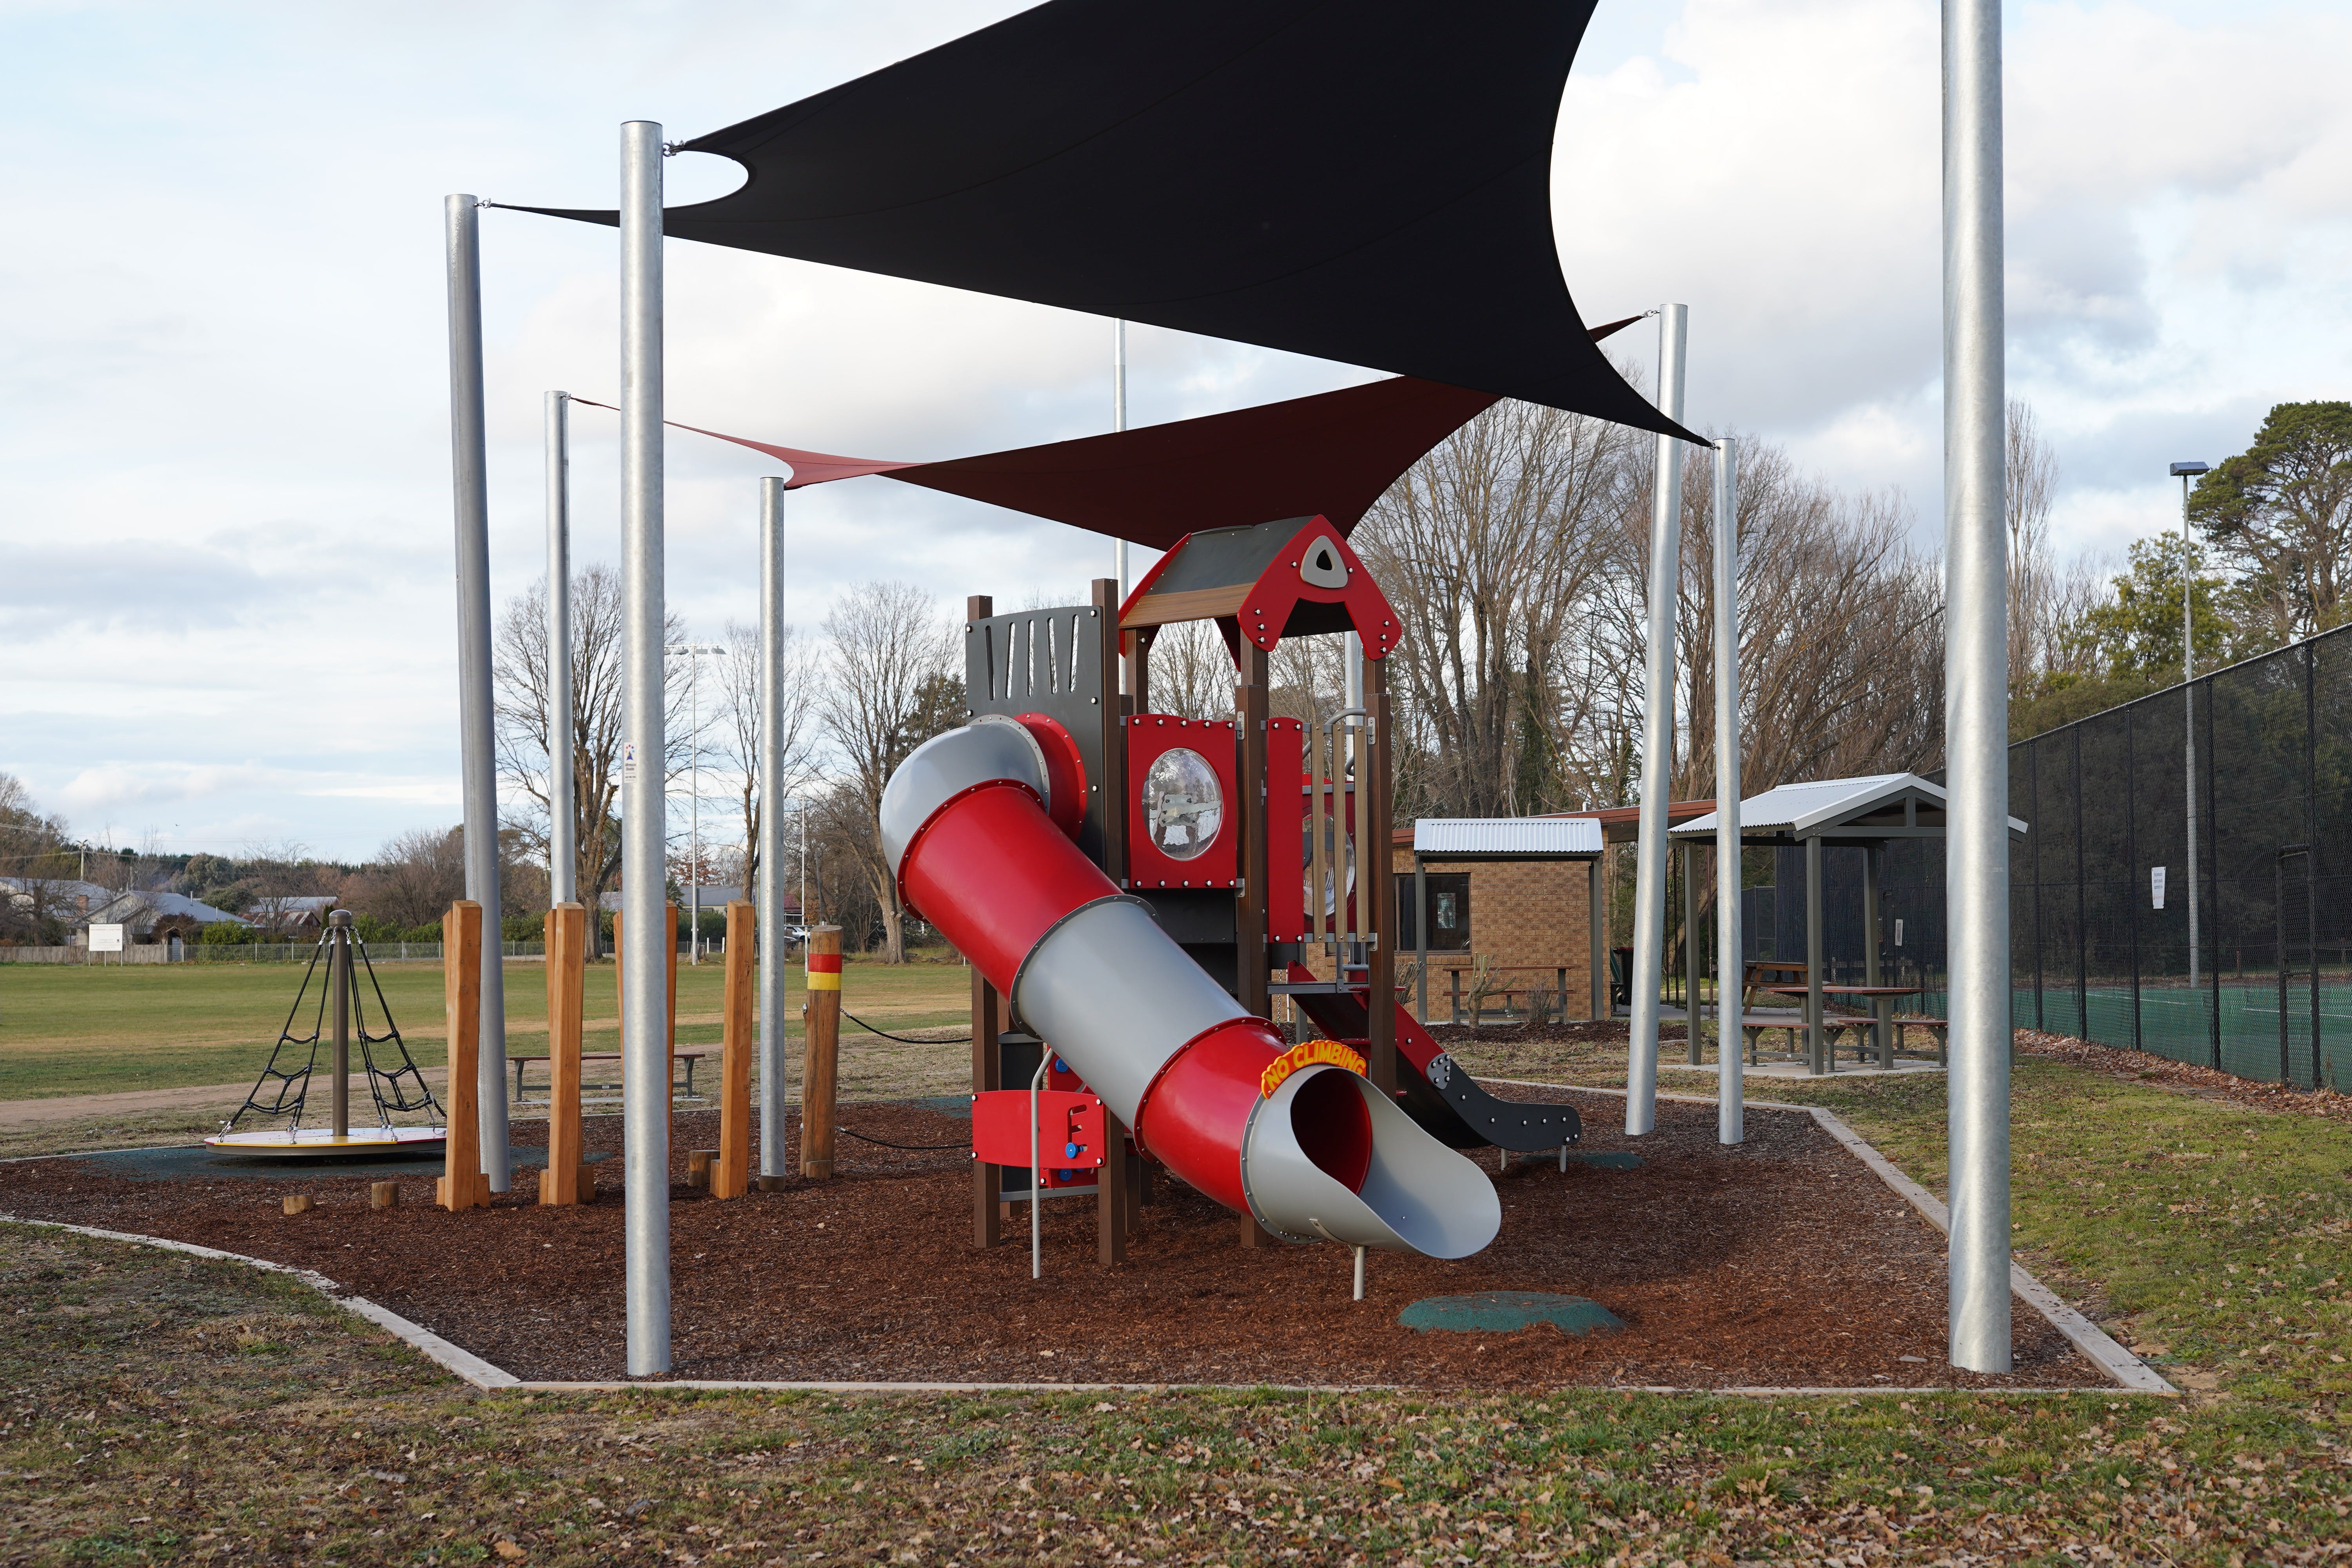 Braidwood Recreation Grounds and Playground - Accommodation Gold Coast